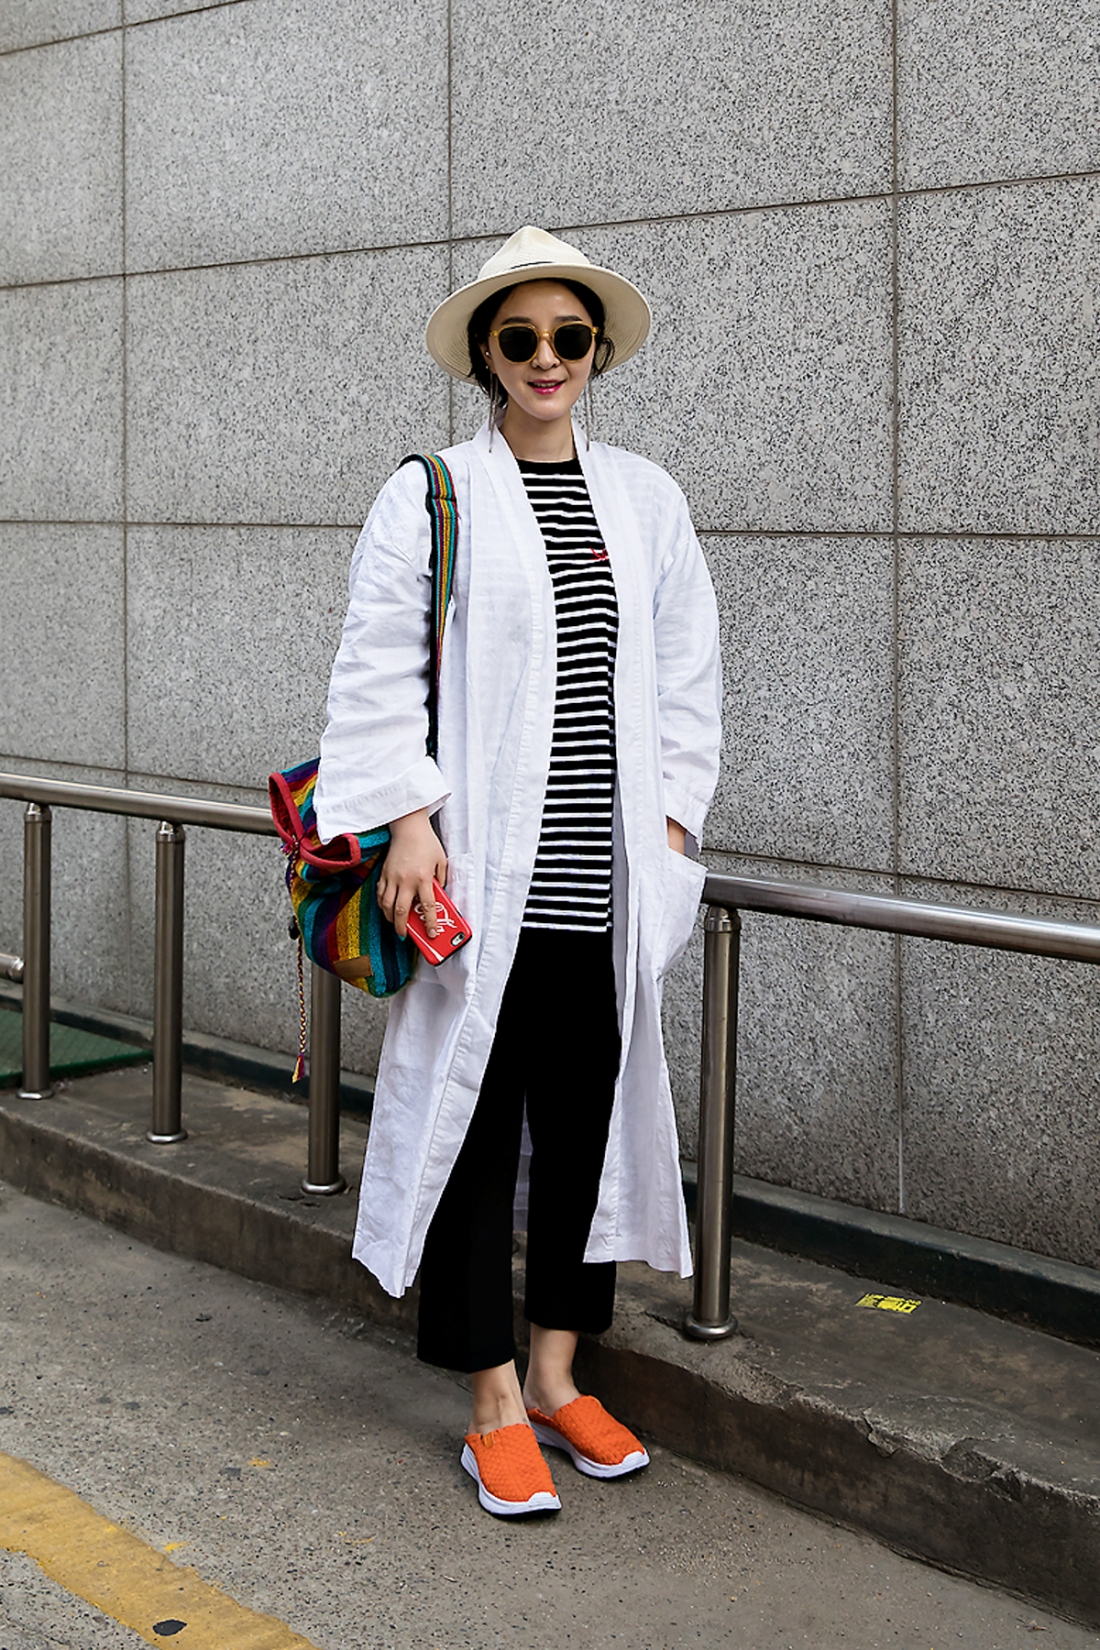 Choi Gojib, Street Fashion 2017 in Seoul.jpg